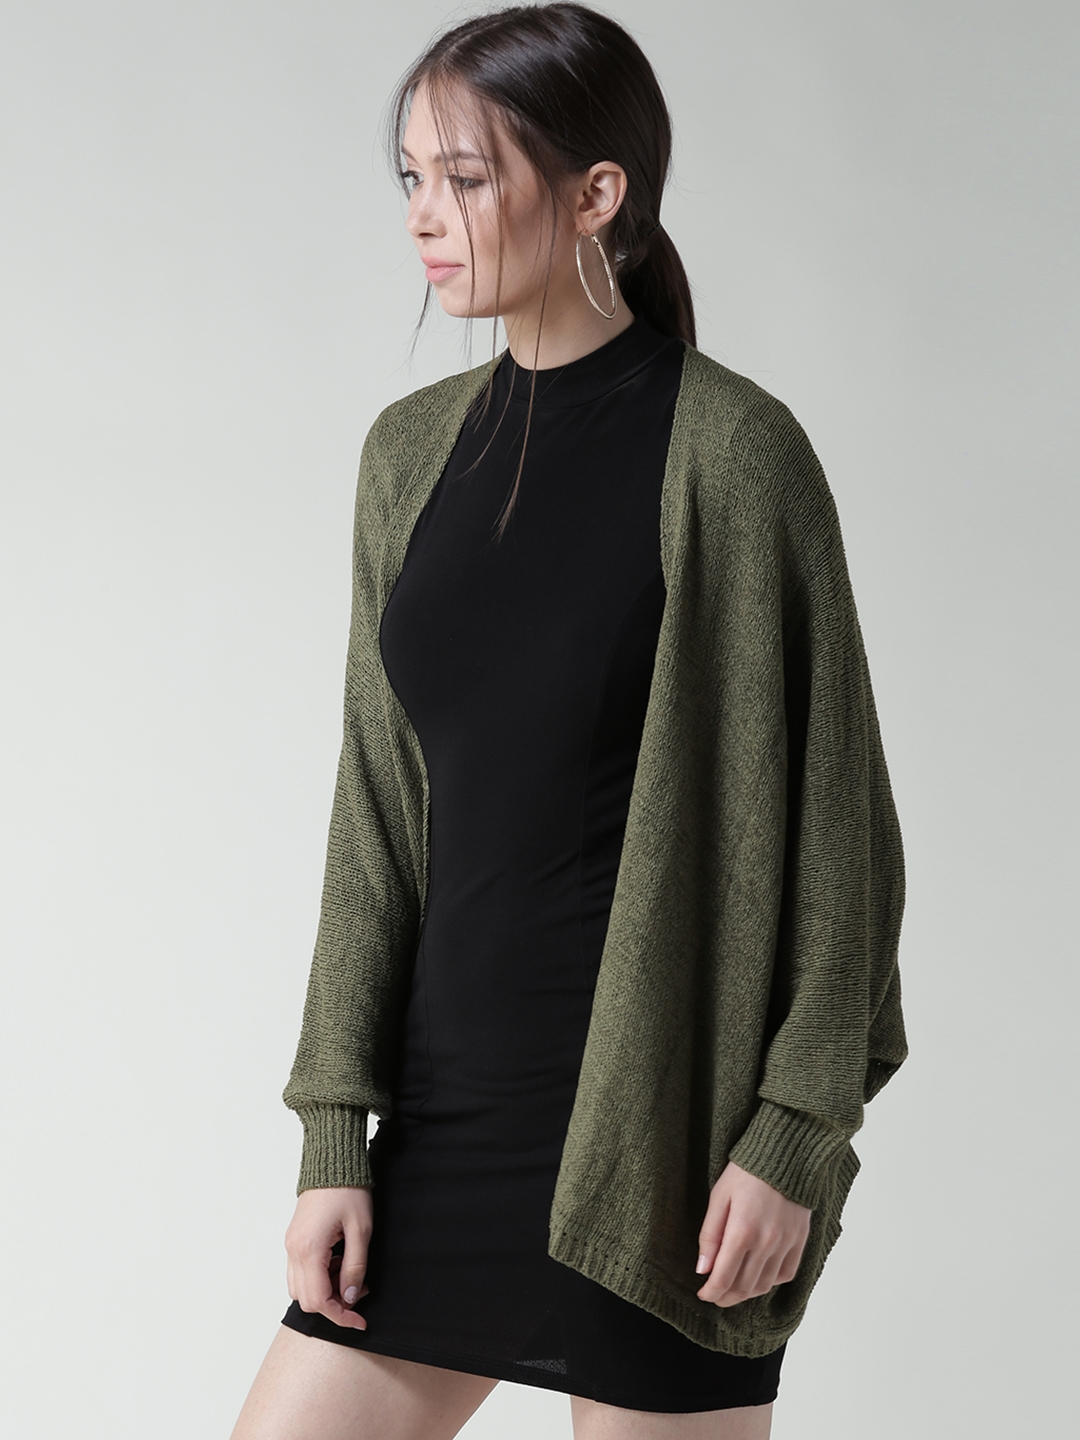 f097fe1b2b Buy FOREVER 21 Women Olive Green Solid Front Open Cardigan ...